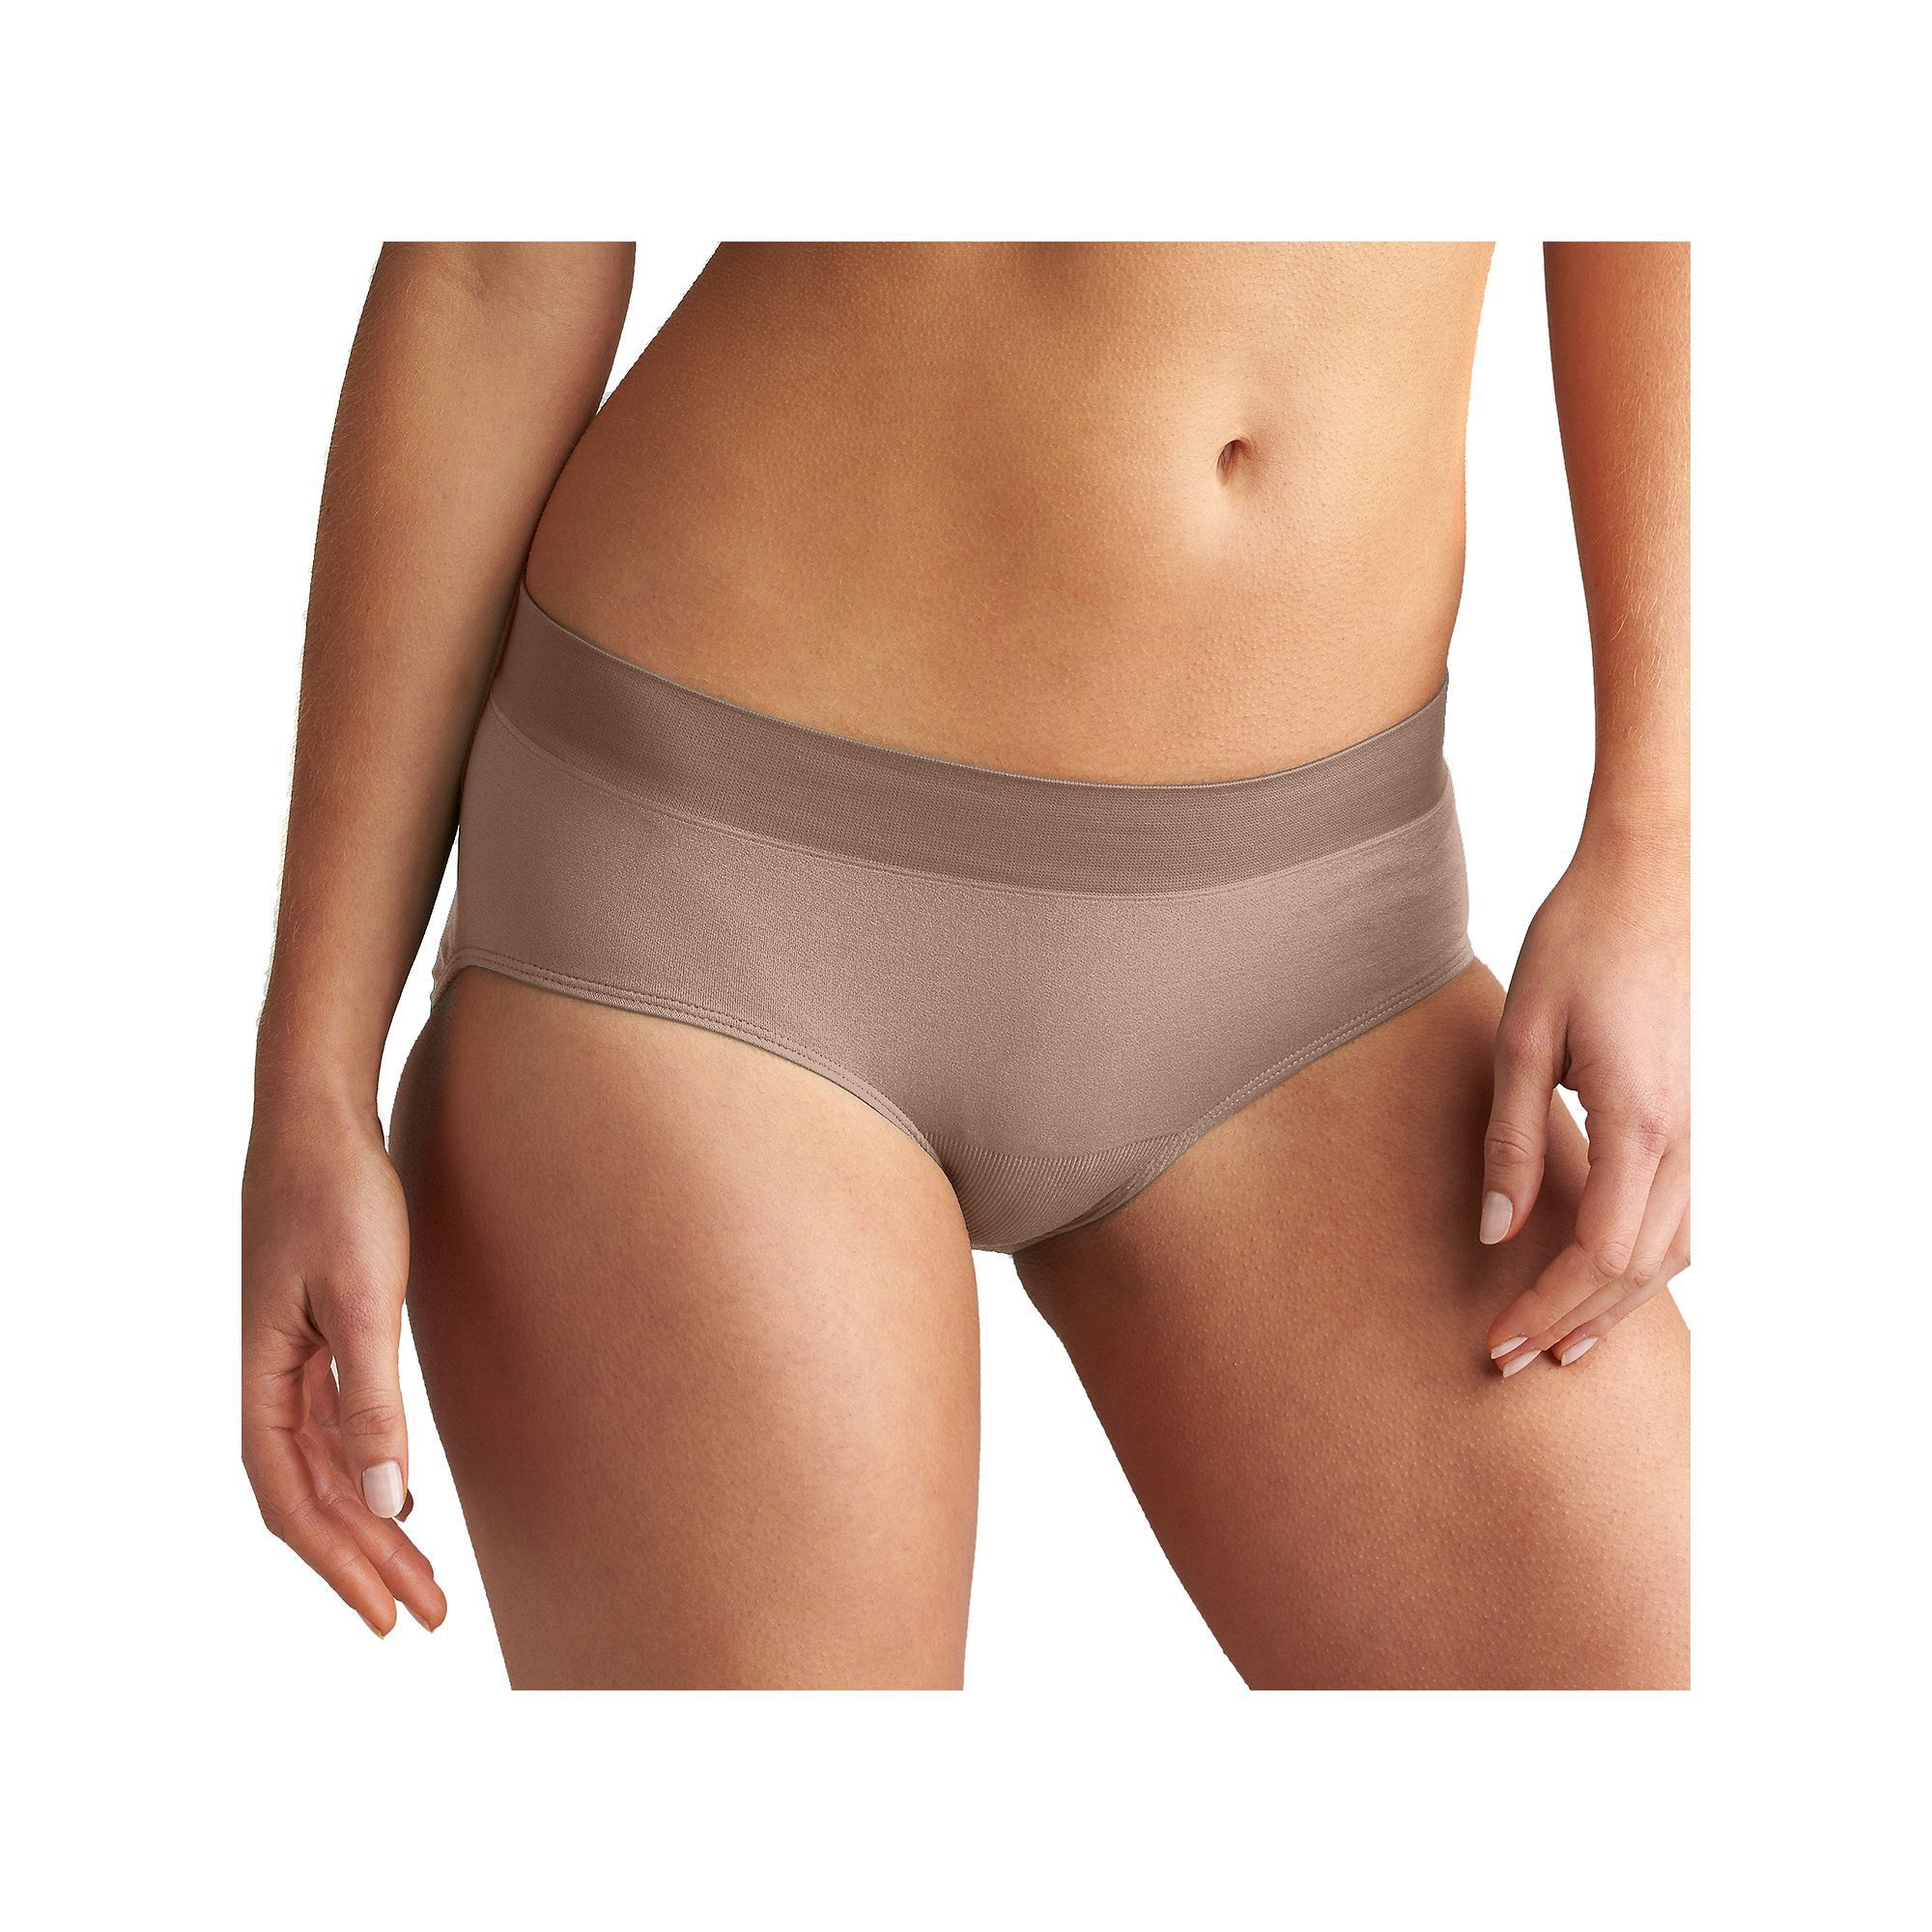 Panties For Women Briefs Types Of Knickers Skimpy Dressed Woman